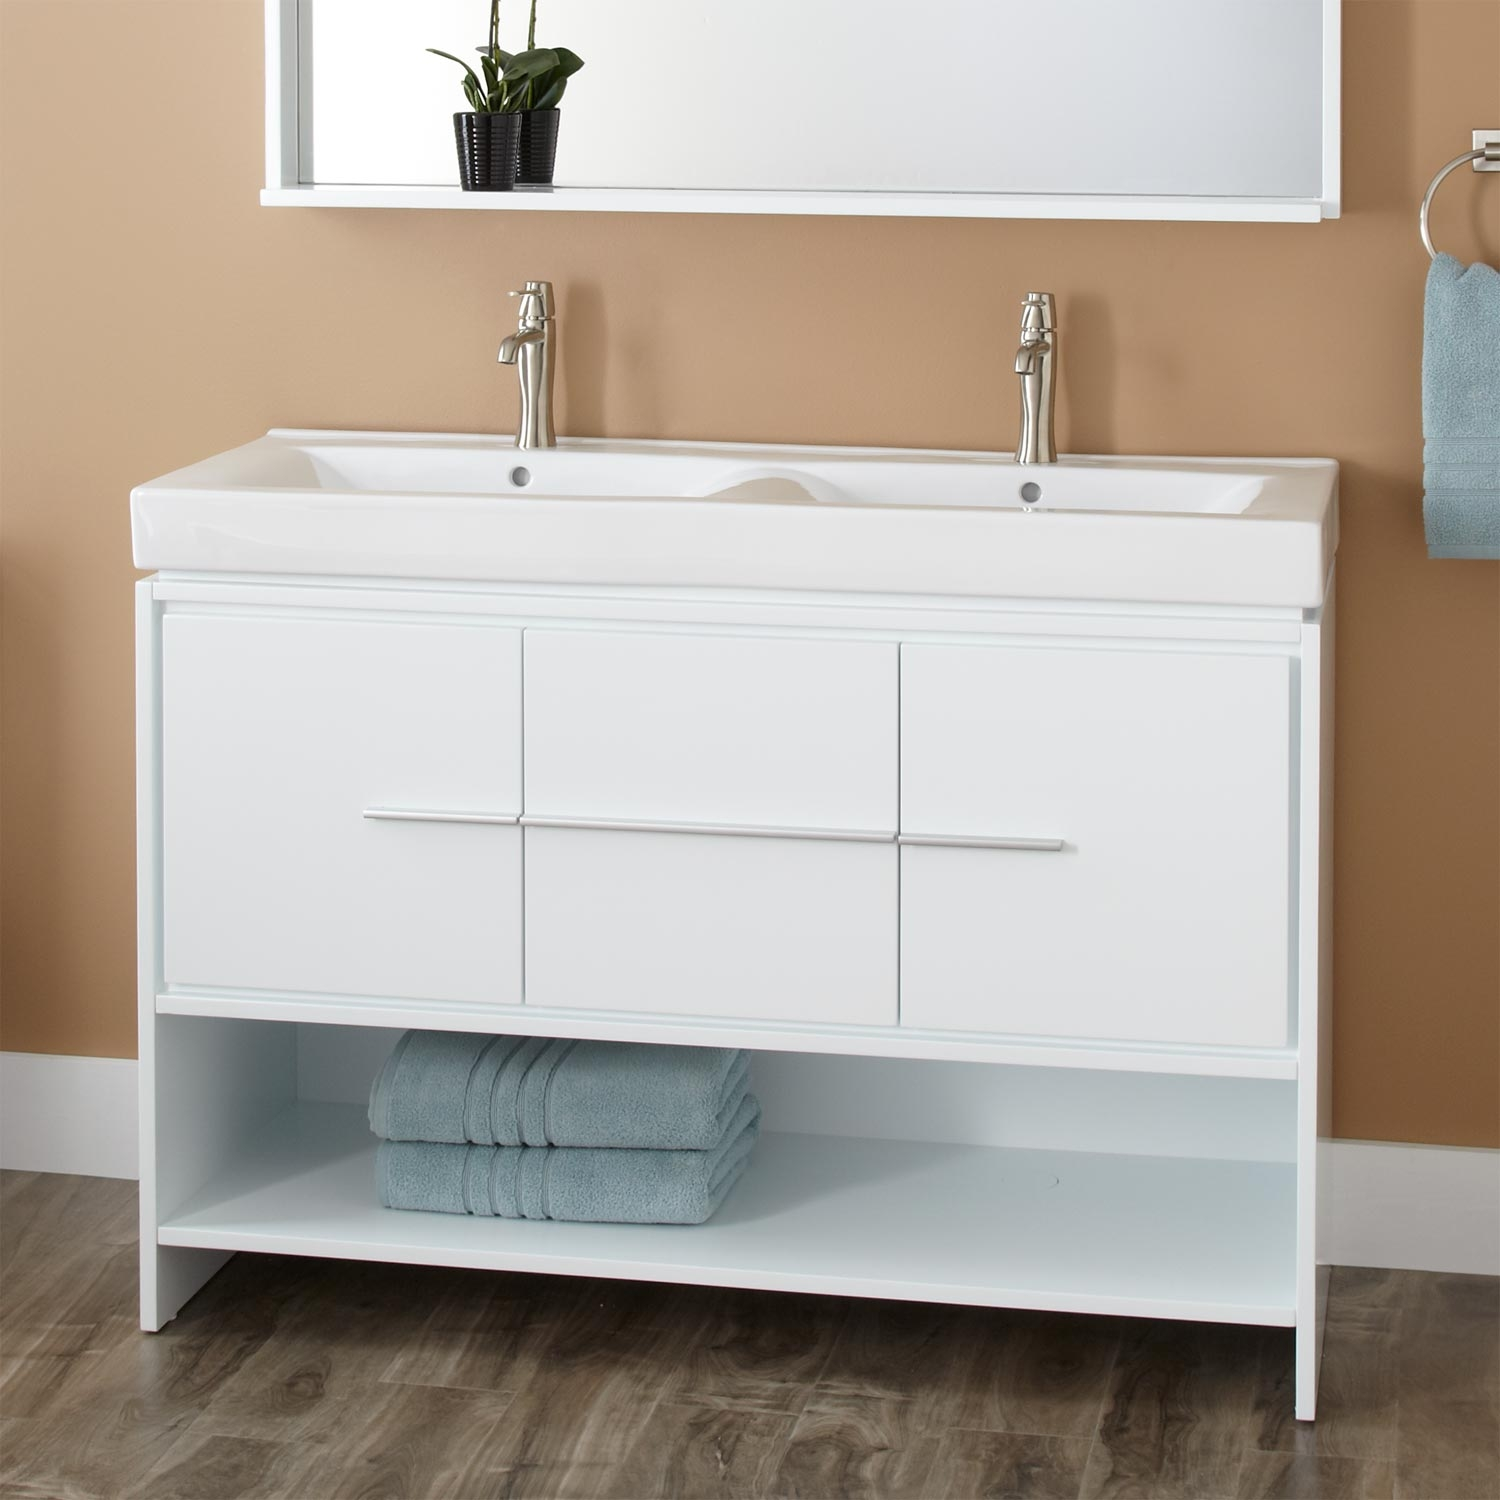 Bathroom Vanity Floor Cabinet